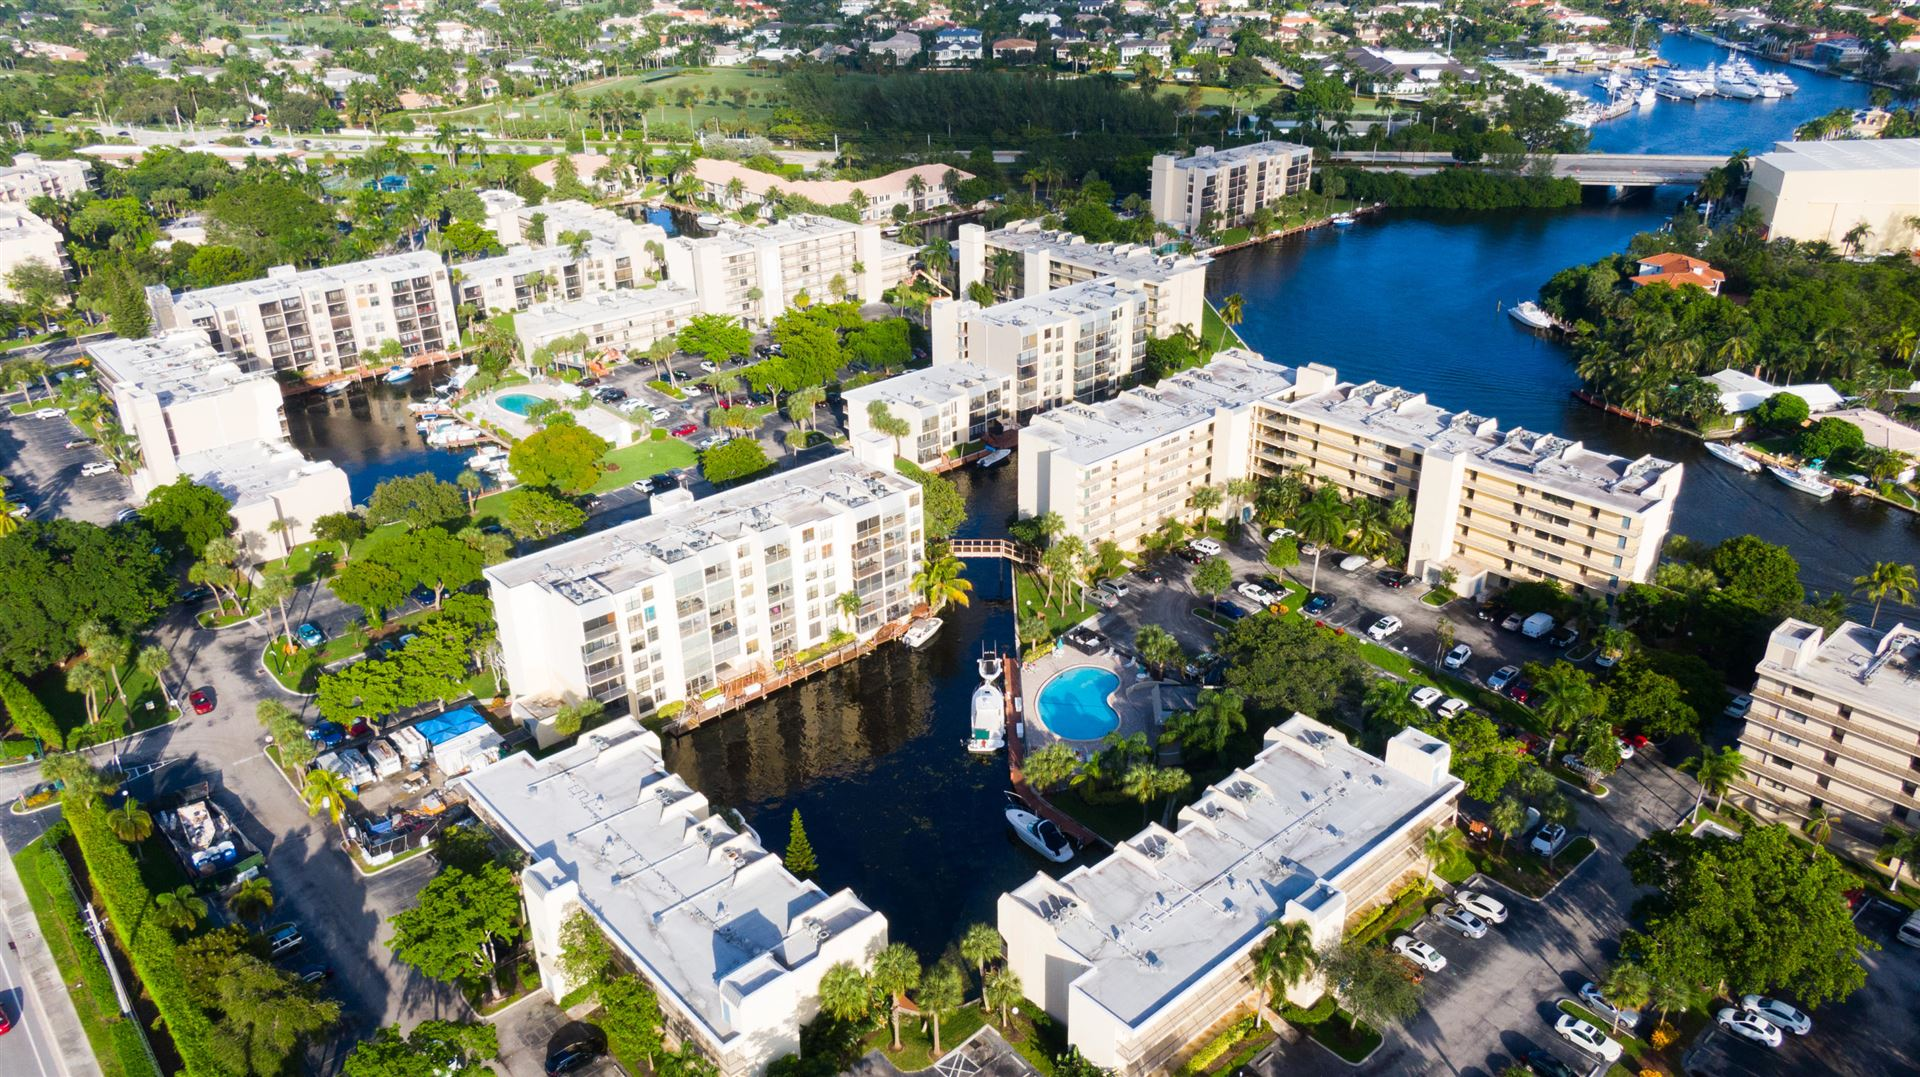 4 Royal Palm Way #207, Boca Raton, FL 33432 - #: RX-10667018